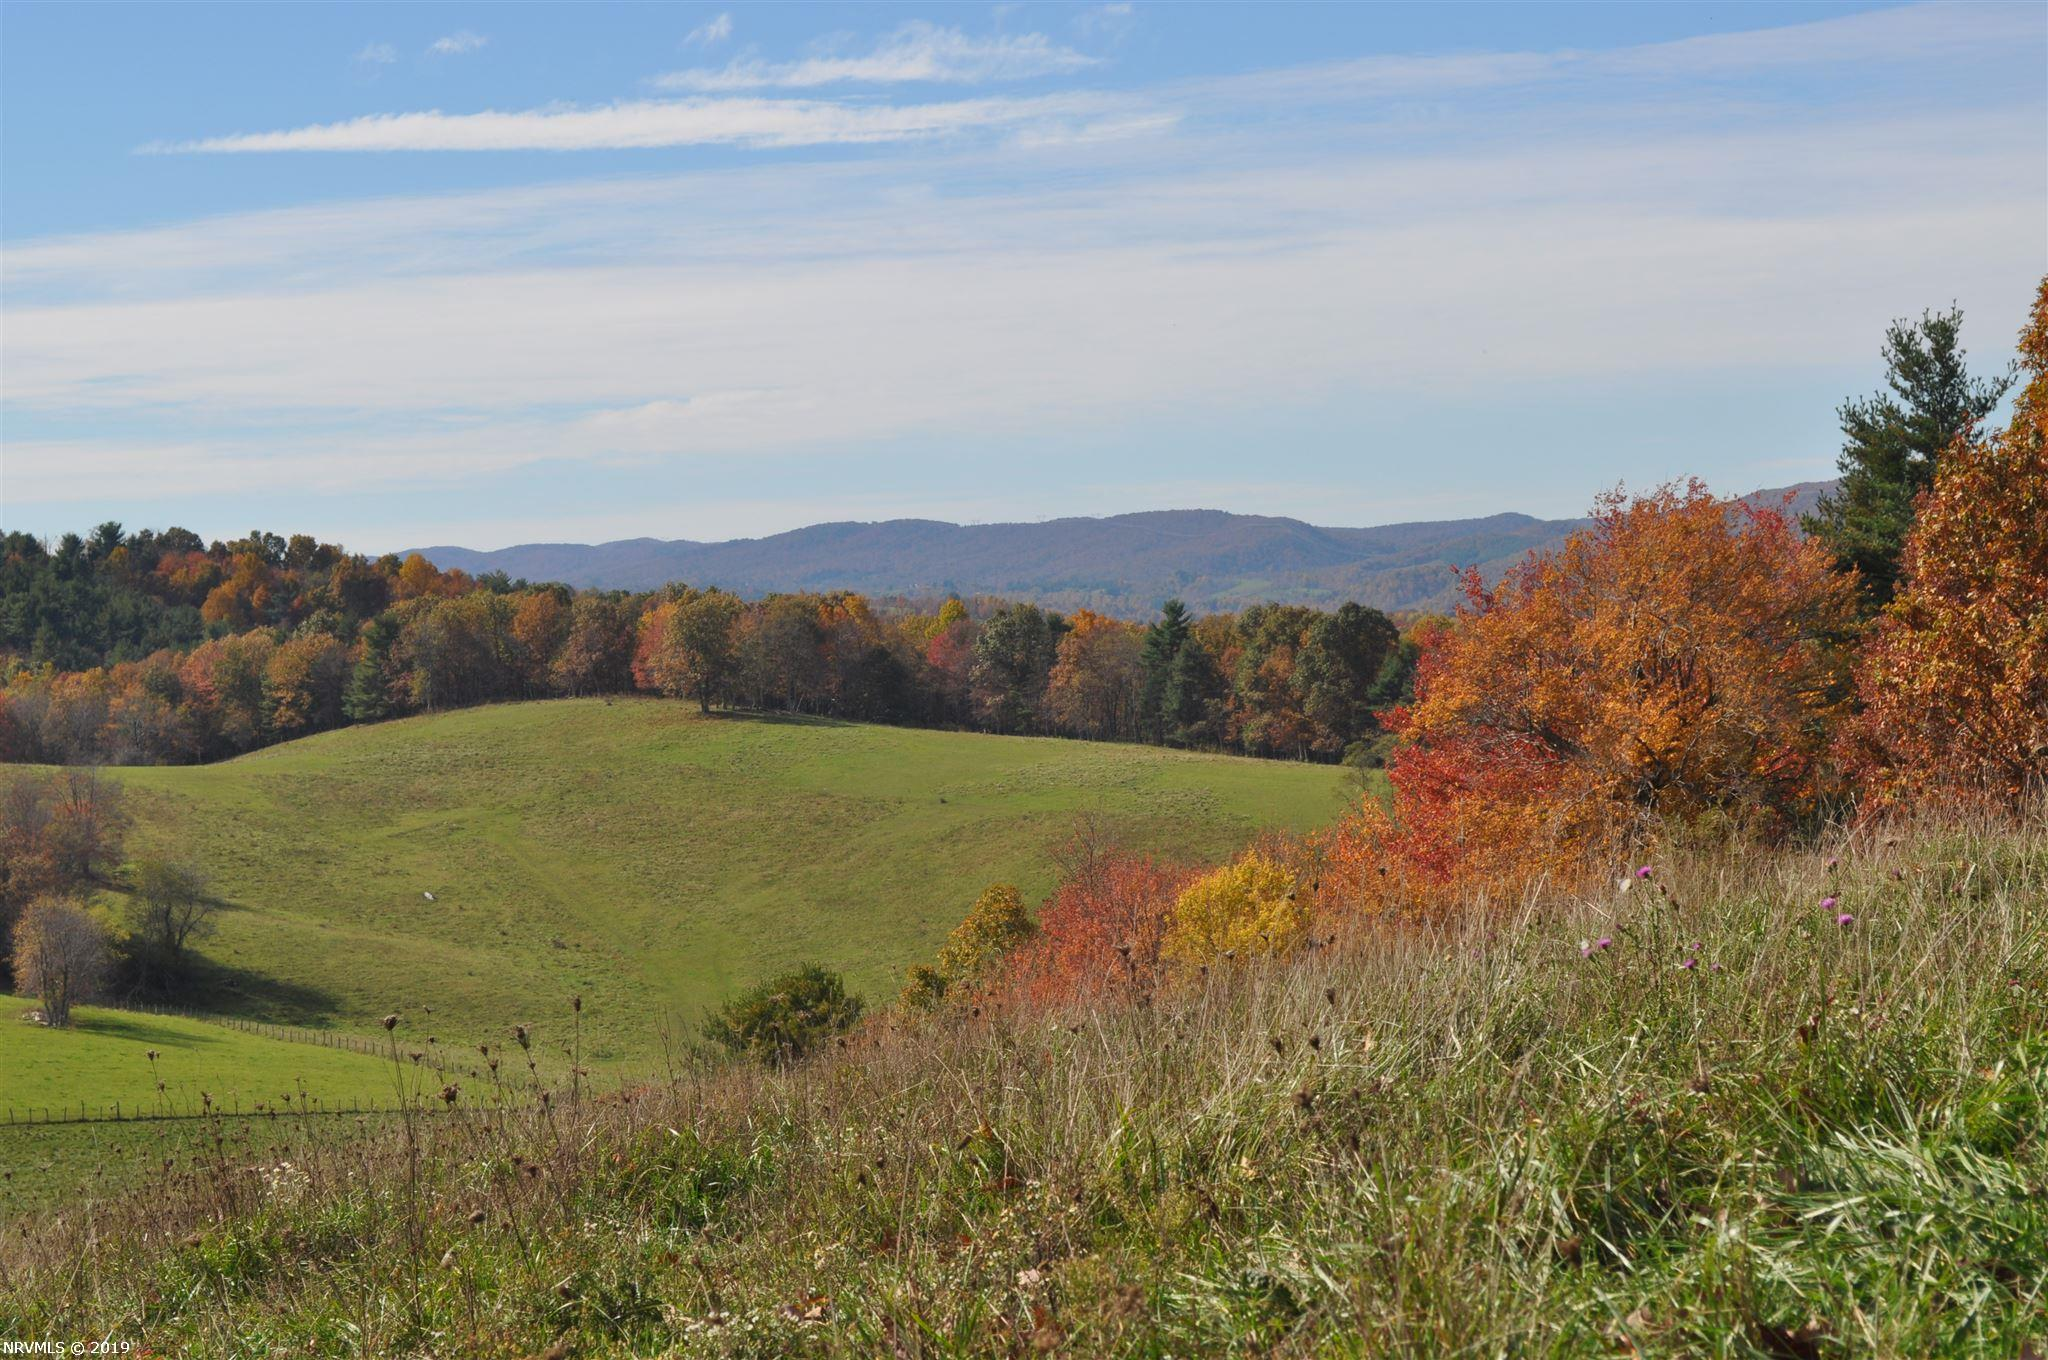 Amazing long range panoramic views, streams, springs, rolling hills, various ecosystems & directional slopes, woodland, pasture, fencing, old home, outbuildings, 1,730 ft of frontage on a paved state maintained road, convenient access to Floyd, Radford, Christiansburg, & Blacksburg, this property has it ALL!! This 54.8 acres in 3 parcels includes access on 2 roads, electricity on both ends of the property, multiple spring heads, old home with outbuildings, well, and septic in place (convey As-Is). The land itself has loads of potential for all sorts of possibilities, whether you prefer to build your dream home with long range mountain views in nearly every direction, vacation home to visit for relaxation & recreation, establish a vineyard, farm, homestead, orchard, whatever draws you to Floyd County with our history, clean air and water, vibrant community, natural beauty and nutrient dense foods, you can create your own unique space here!! Appointment required, don't delay!